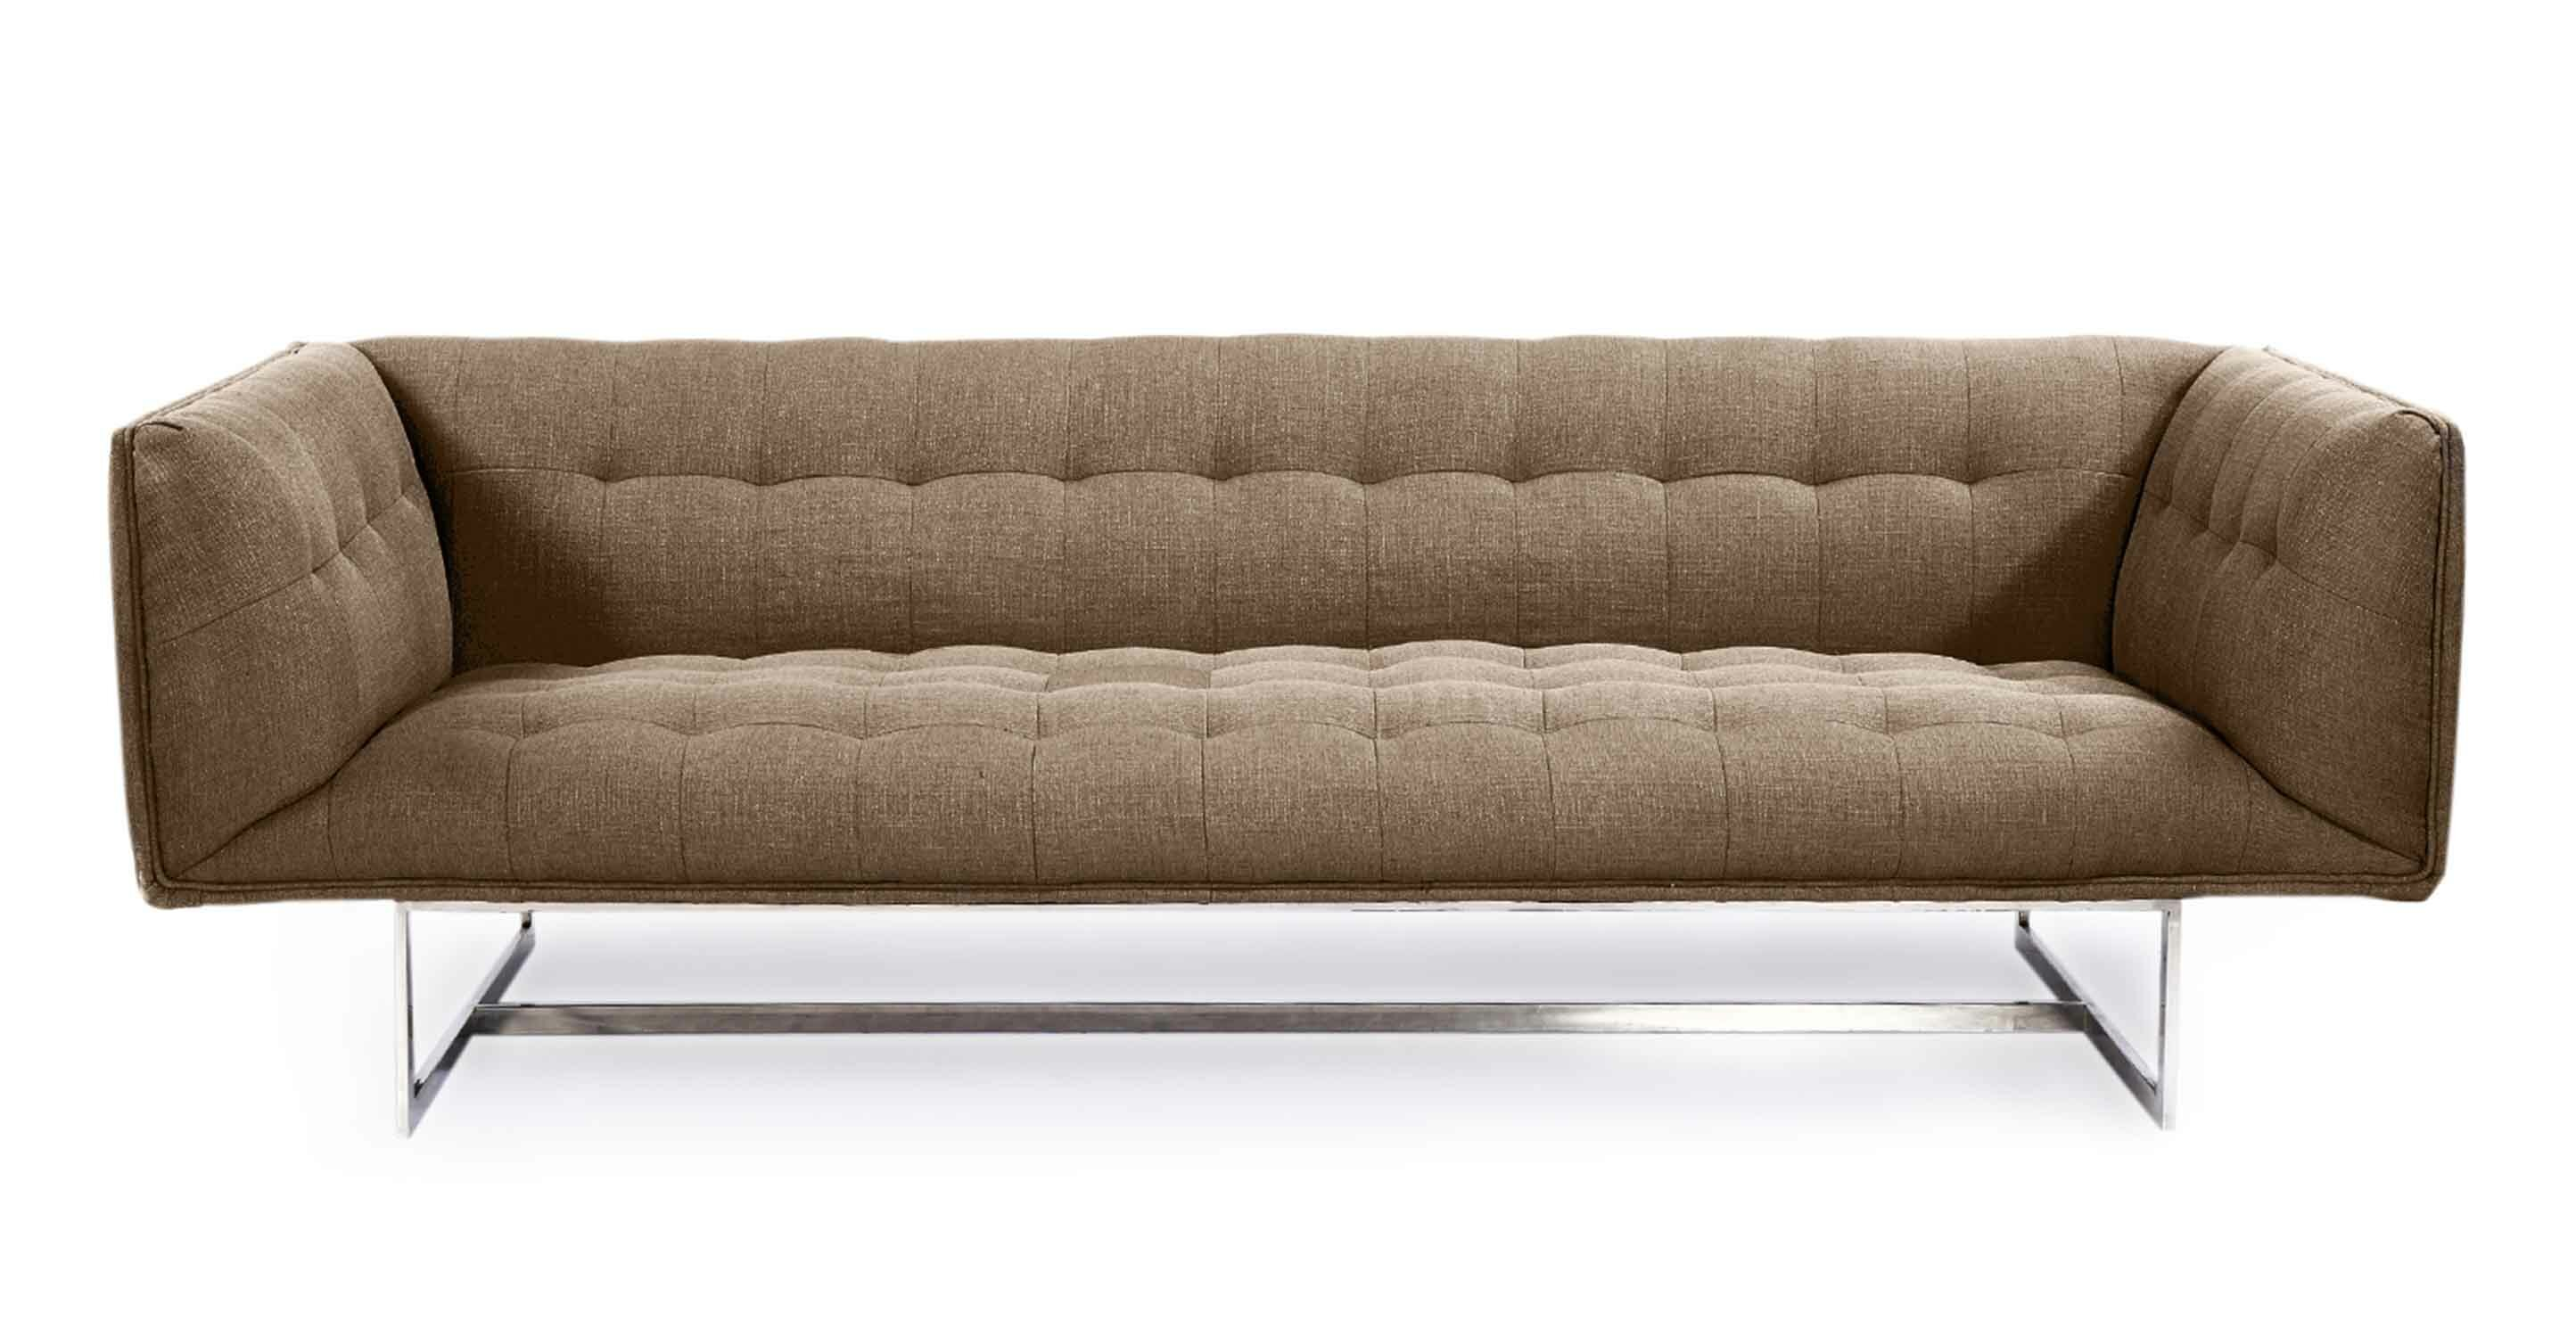 Fine Shaner Mid Century Modern Sofa Gmtry Best Dining Table And Chair Ideas Images Gmtryco